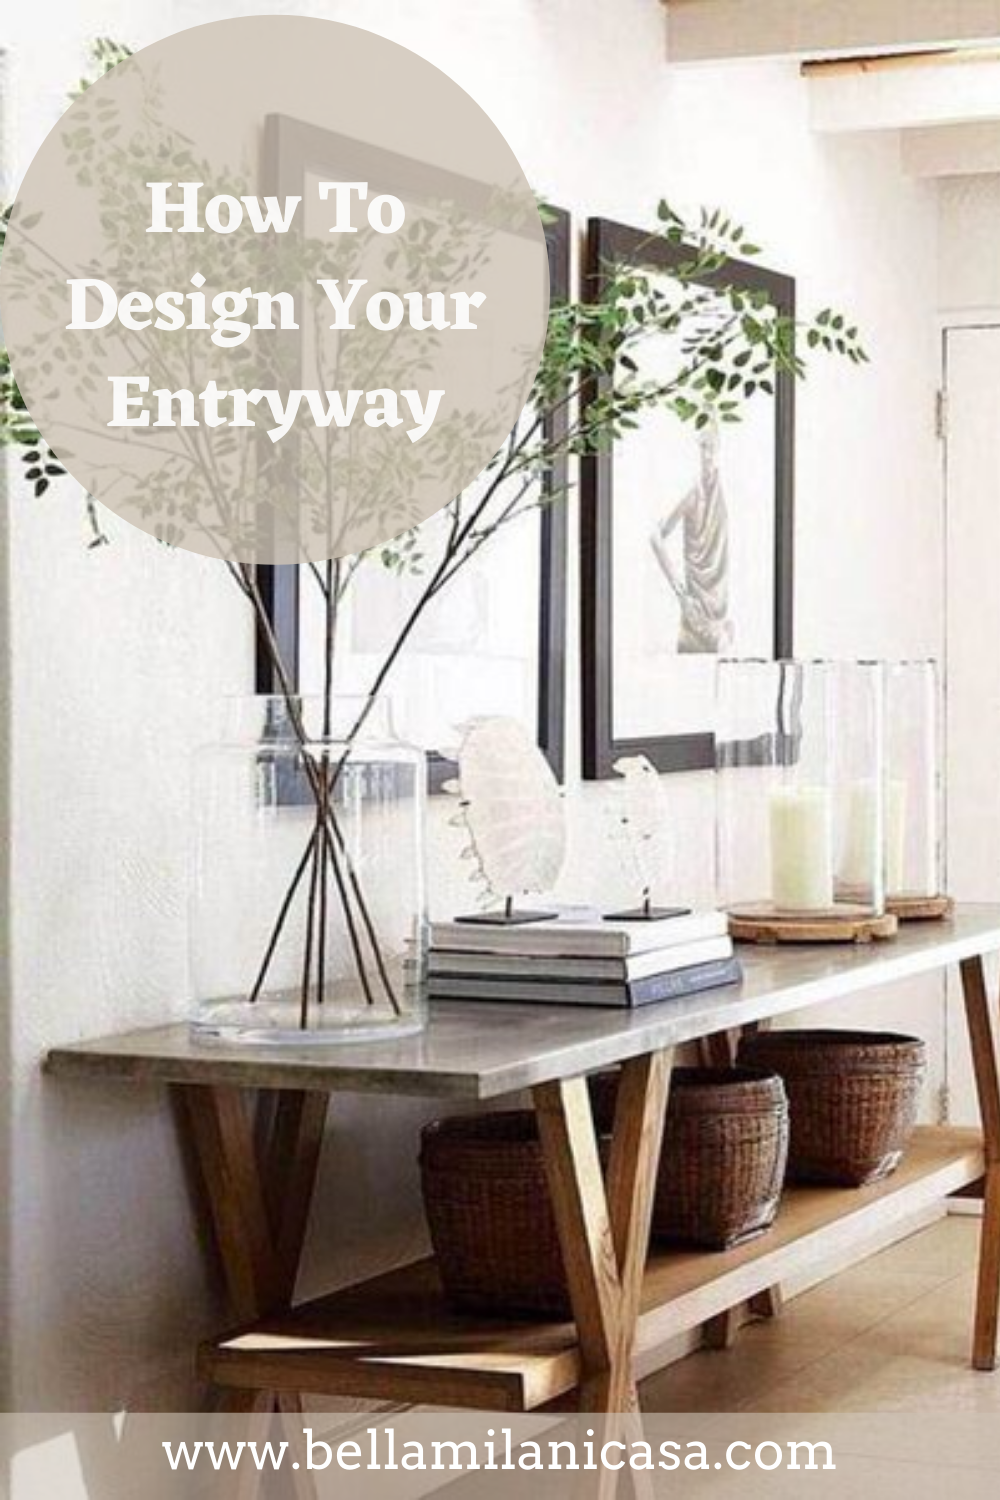 Learn how to design your entrway with these 6 tips! #homedecor #easydecor #entrwayideas #decorideas